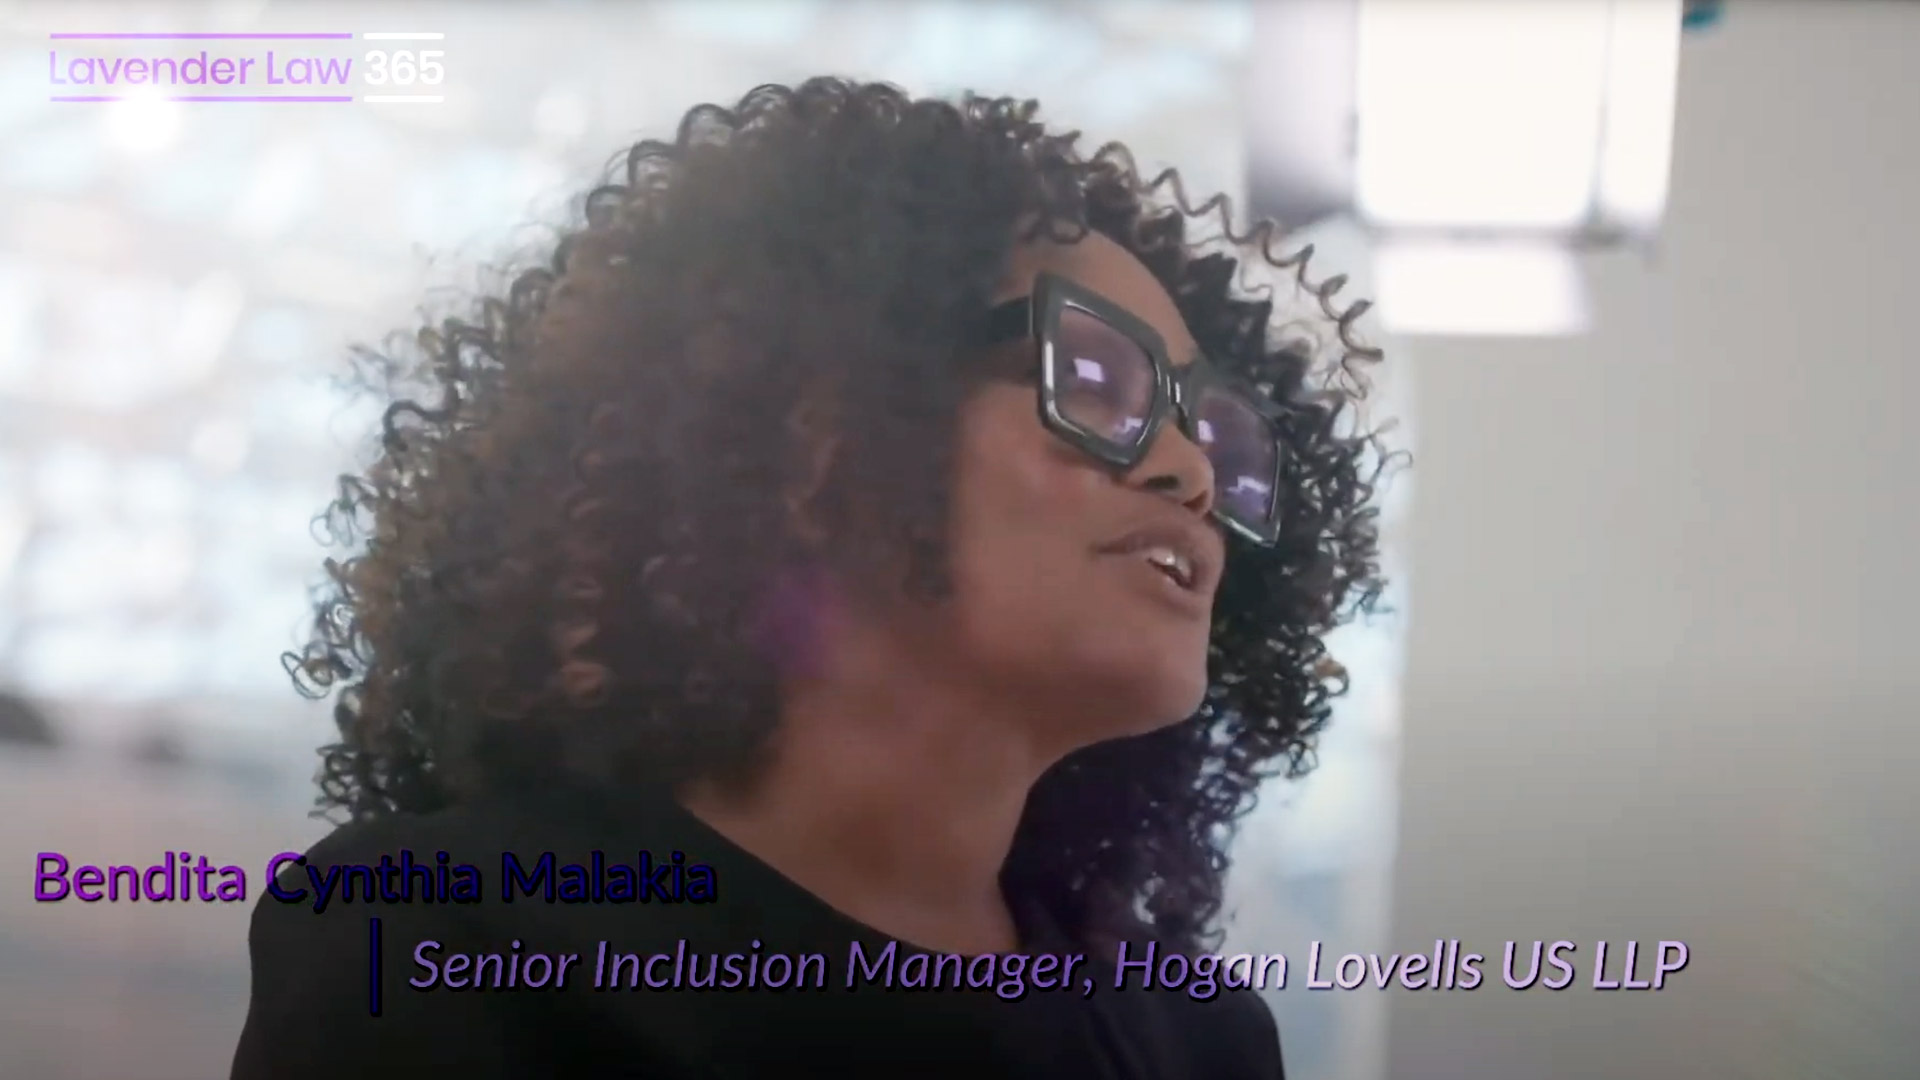 Bendita Cynthia Malakia, Senior Inclusion Manager, Hogan Lovells US LLP on Diversity, Equity and Inclusion and the Lavender Law 365® Program